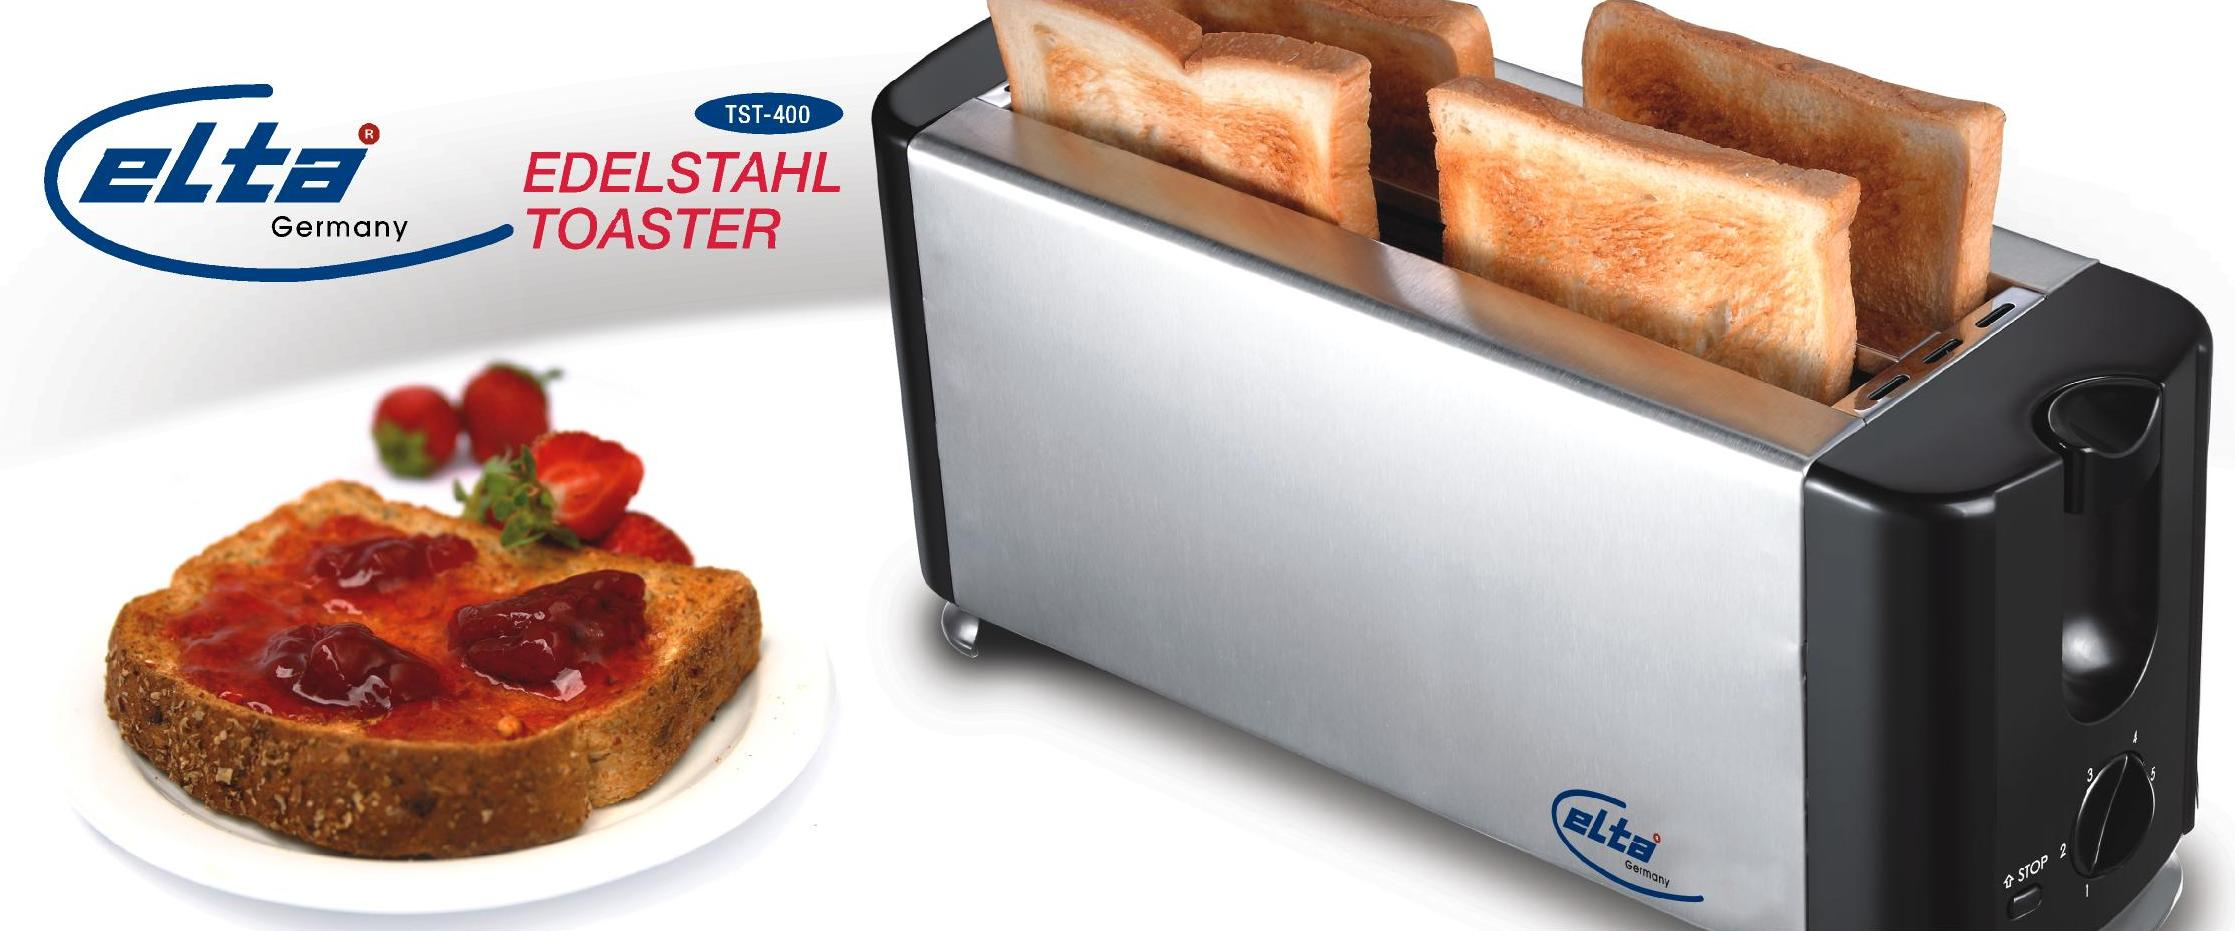 elta 4 scheiben edelstahl toaster toastautomat langschlitztoaster toast tst 400 ebay. Black Bedroom Furniture Sets. Home Design Ideas